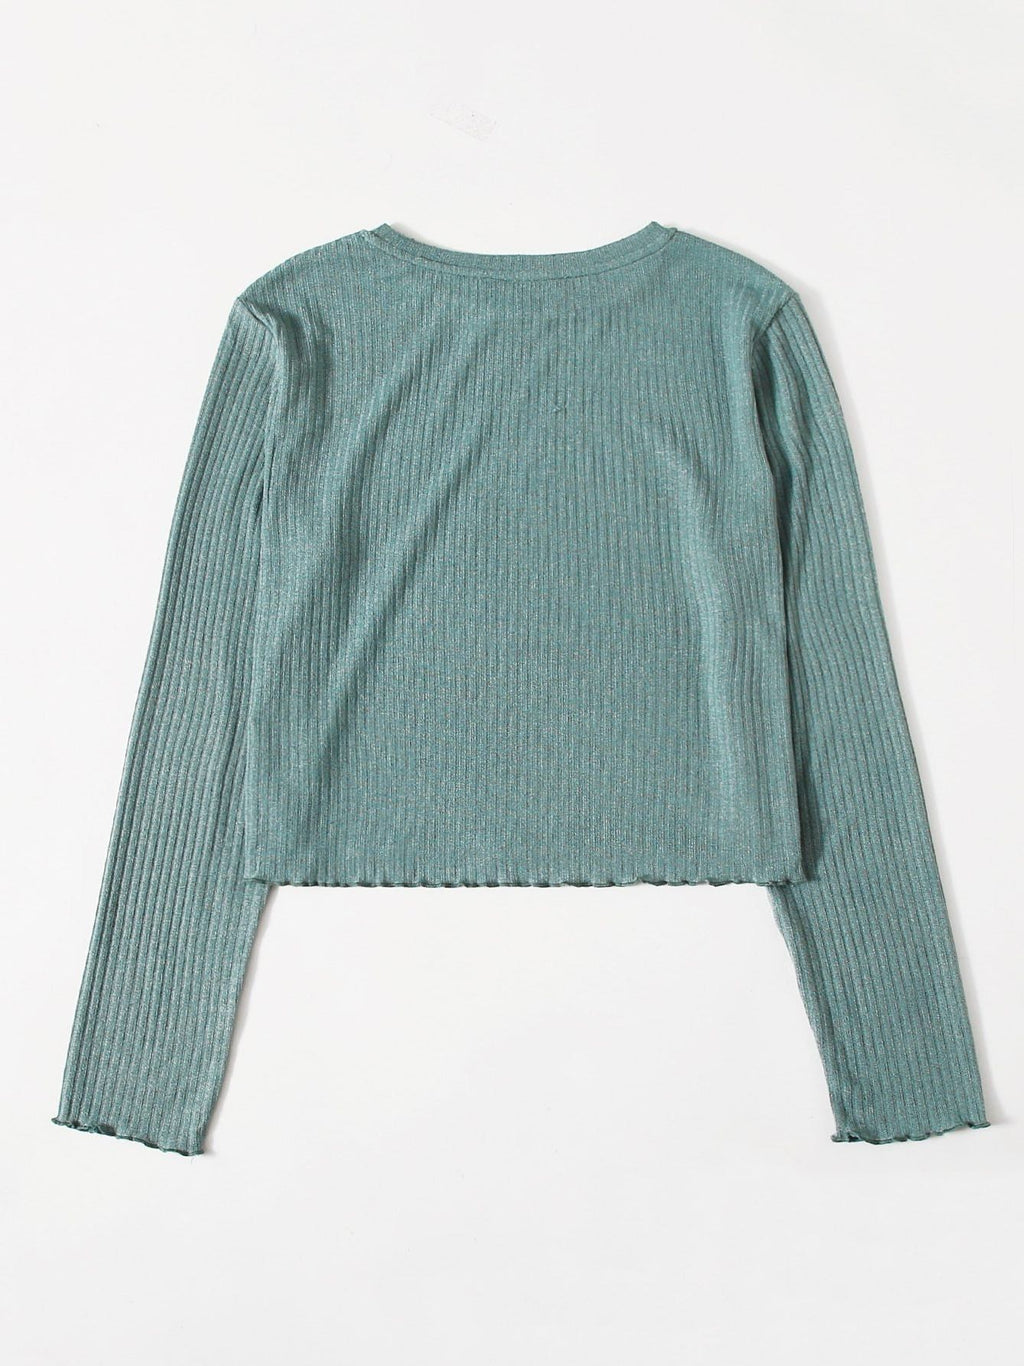 Plus Solid Lettuce Trim Rib-knit Top - INS | Online Fashion Free Shipping Clothing, Dresses, Tops, Shoes